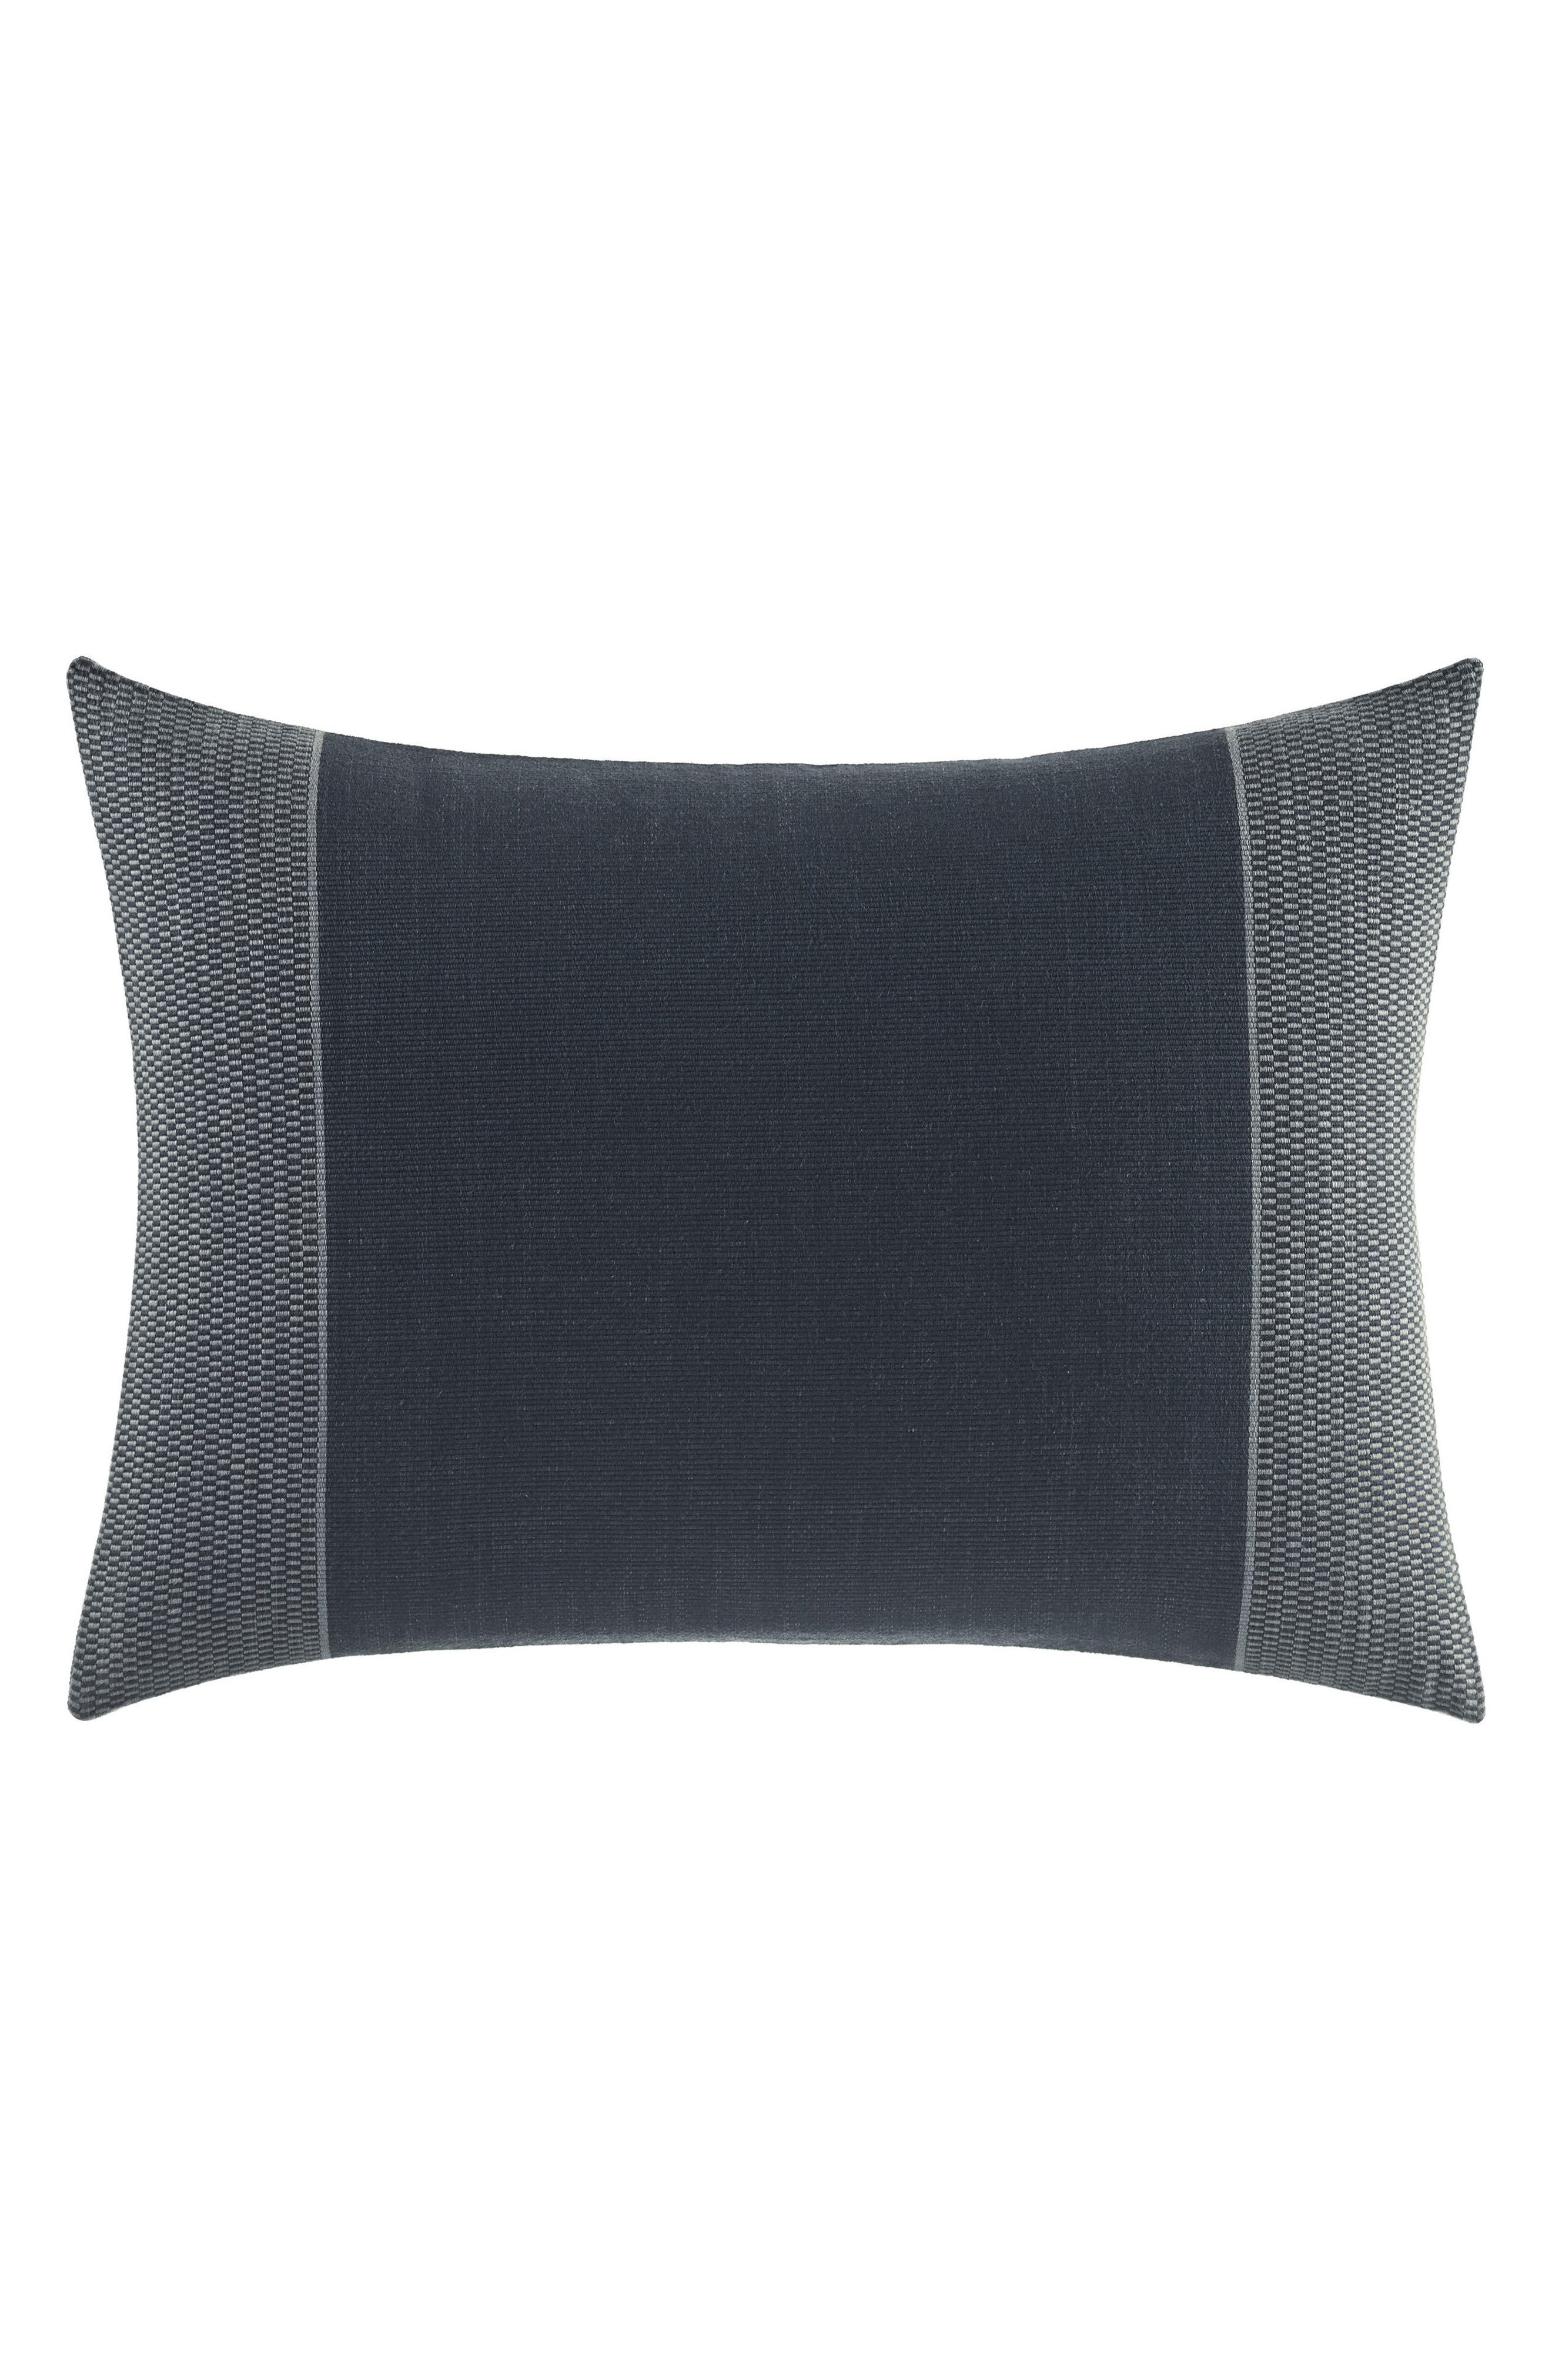 Nomad Accent Pillow,                             Main thumbnail 1, color,                             419